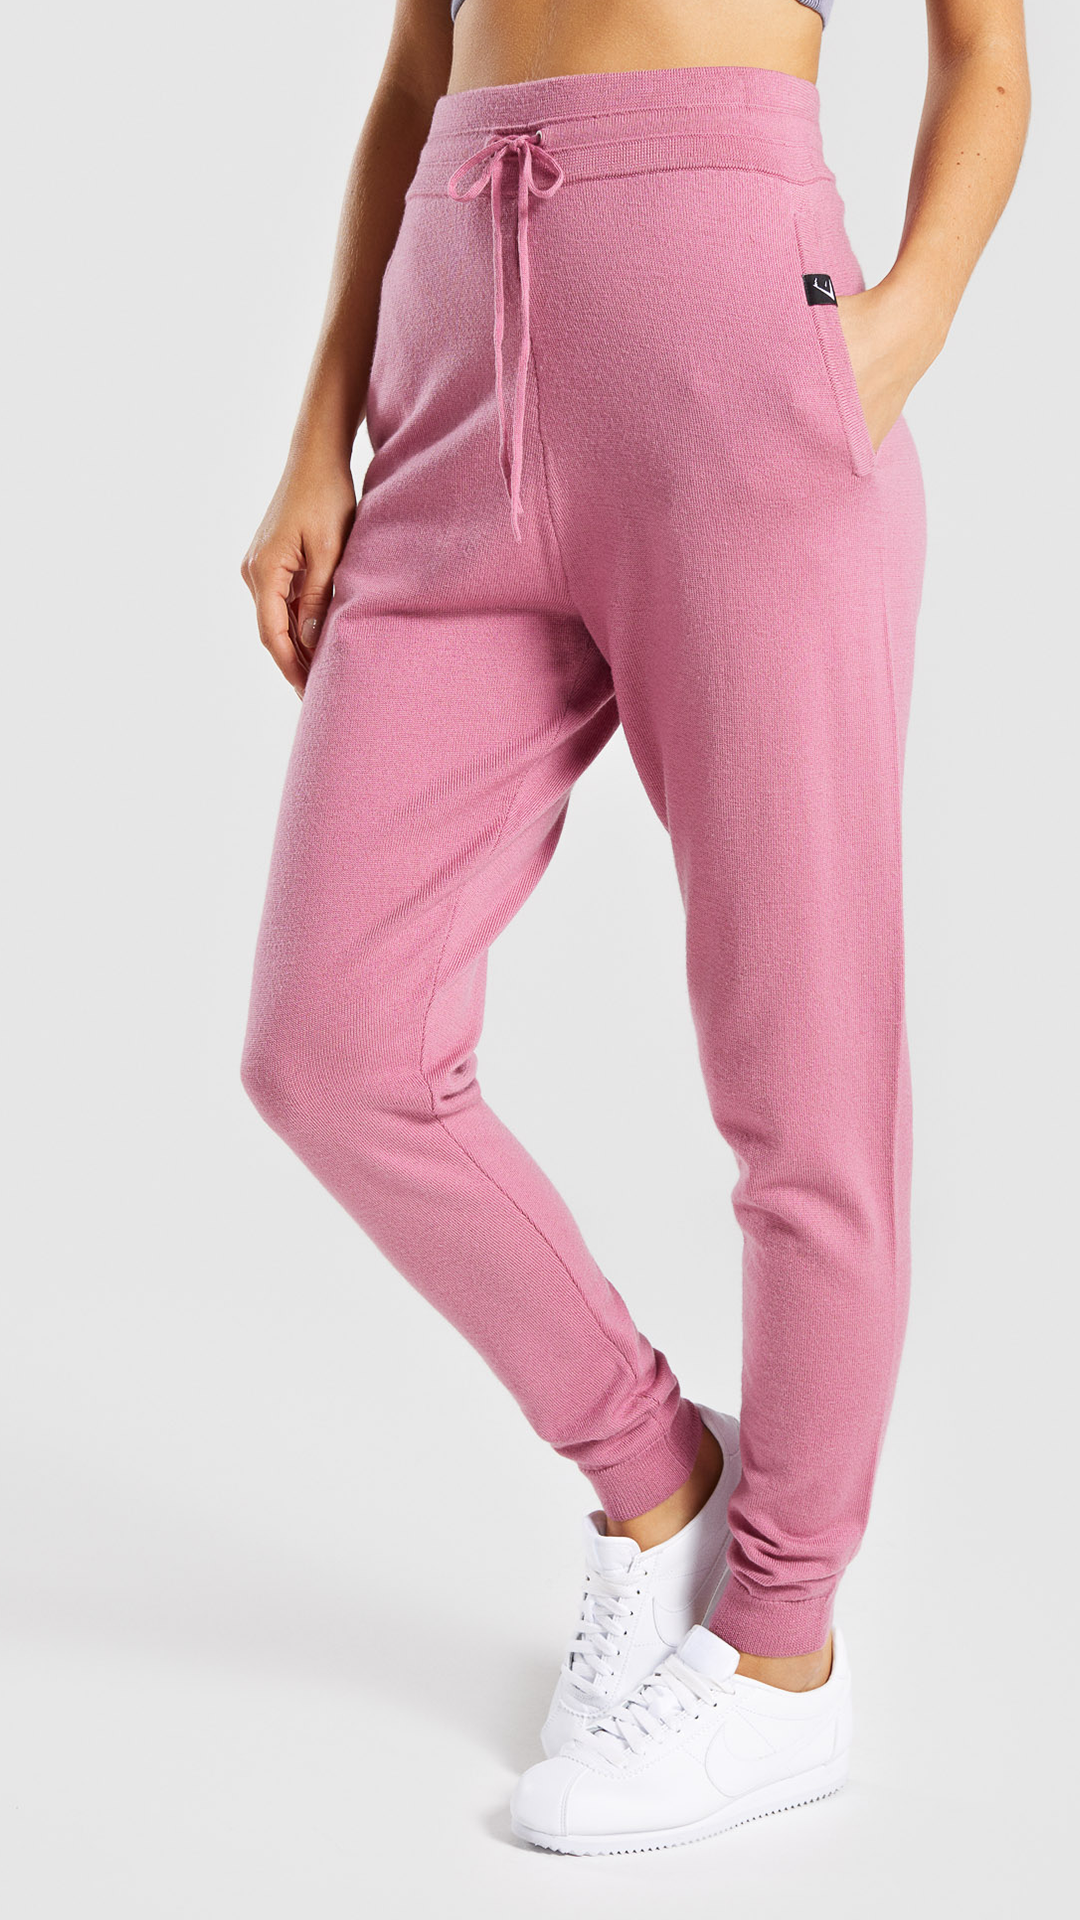 53e325101d020 Isla Knit Joggers, Dusky Pink. Experience a new world of comfort ...